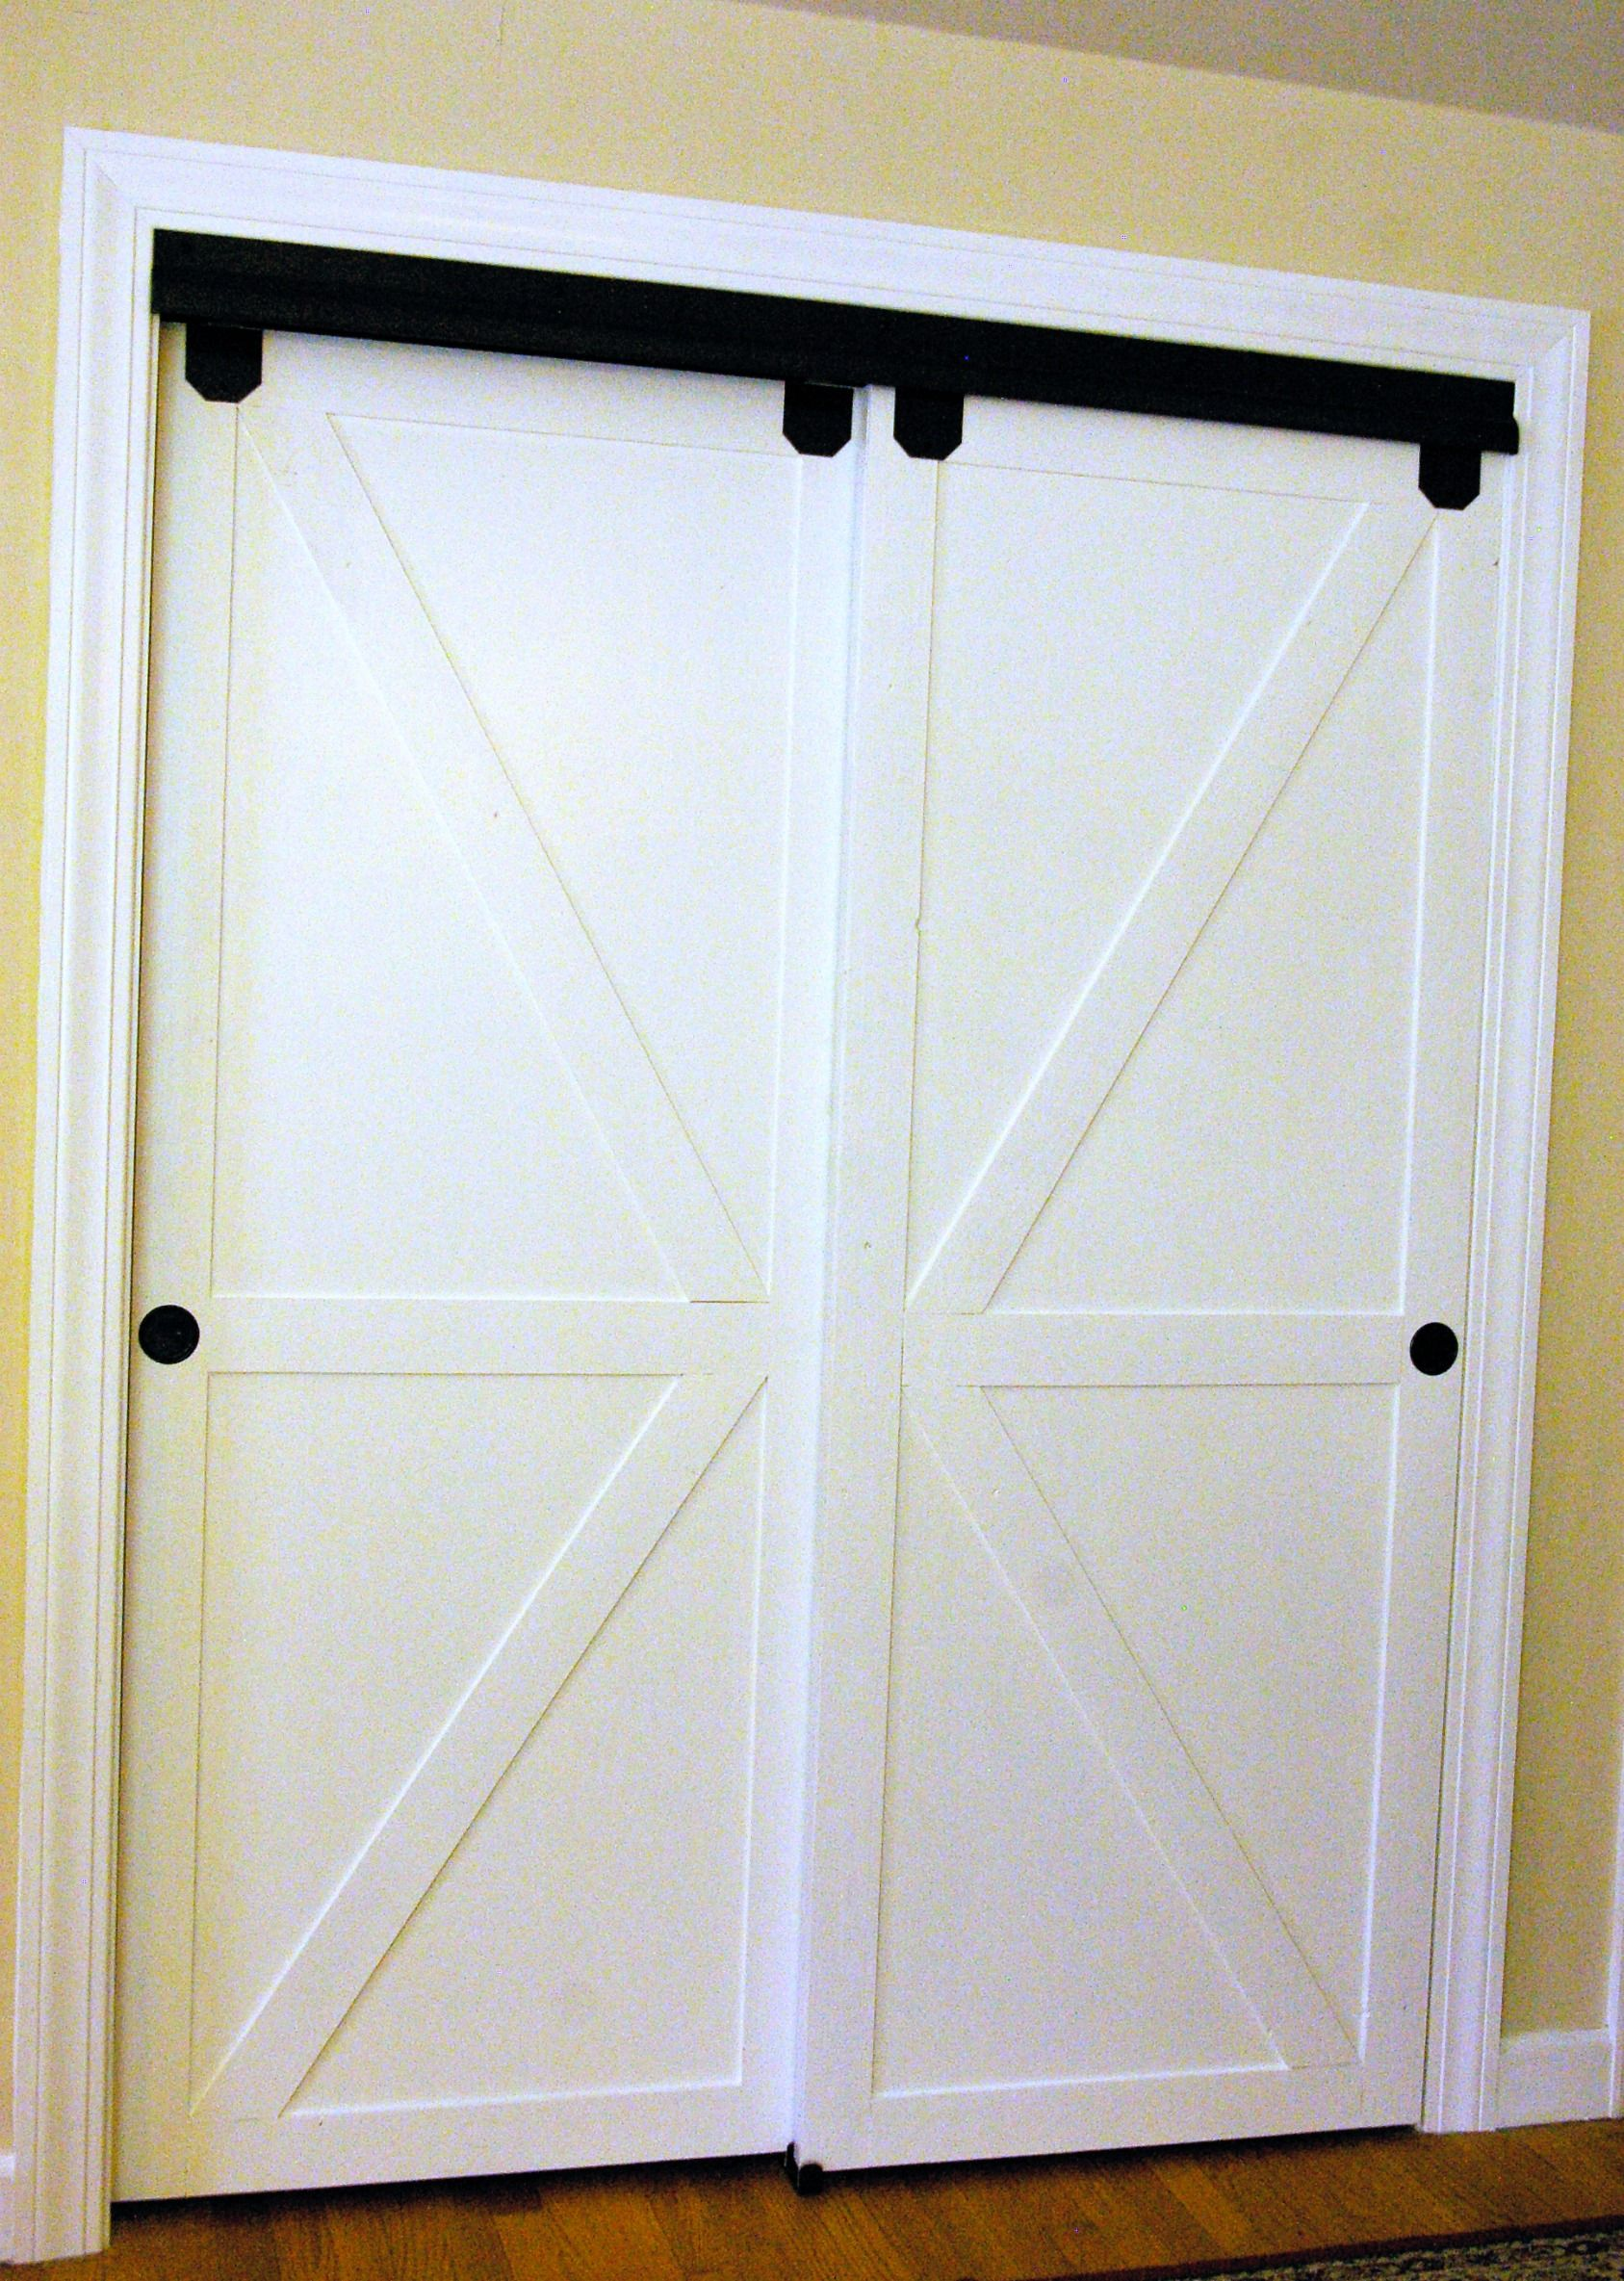 Diy Faux Barn Doors On A Sliding Bypass Closet Door 02 Featured On